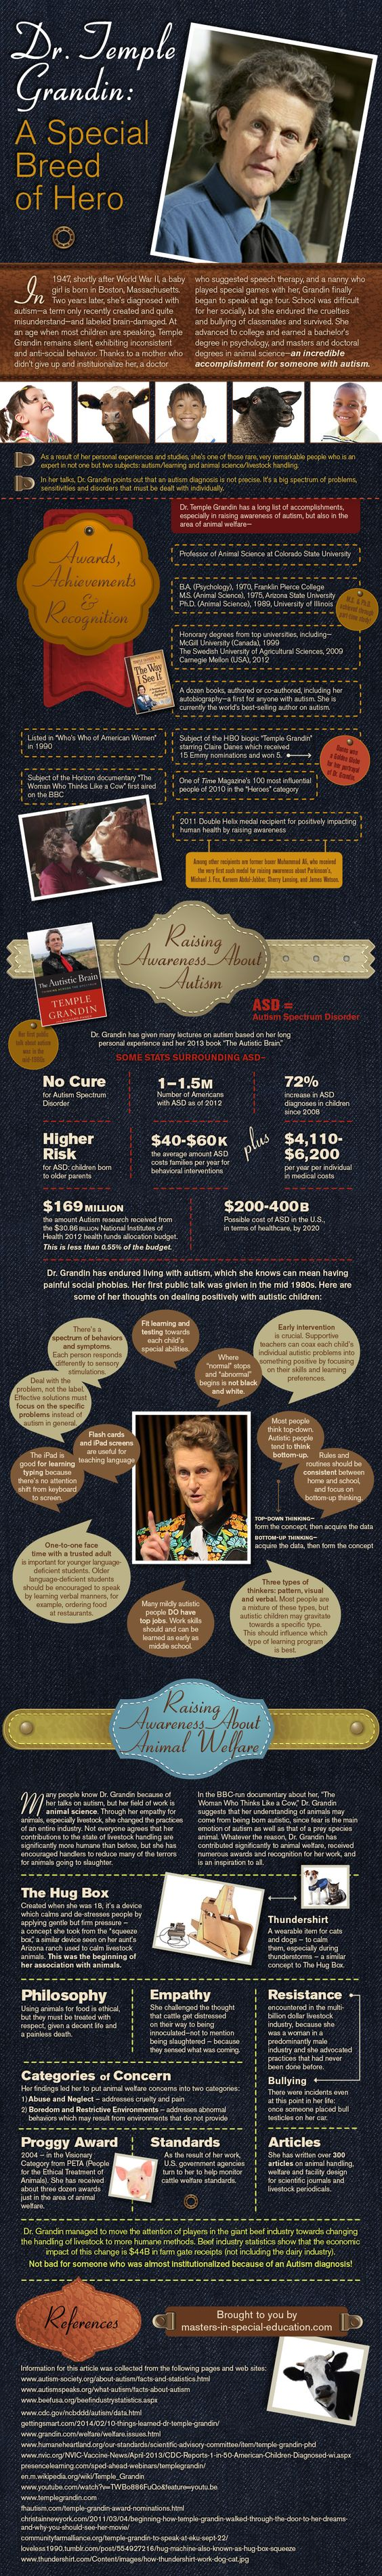 Dr. Temple Grandin: A Special Breed of Hero [Infographic] #Autism